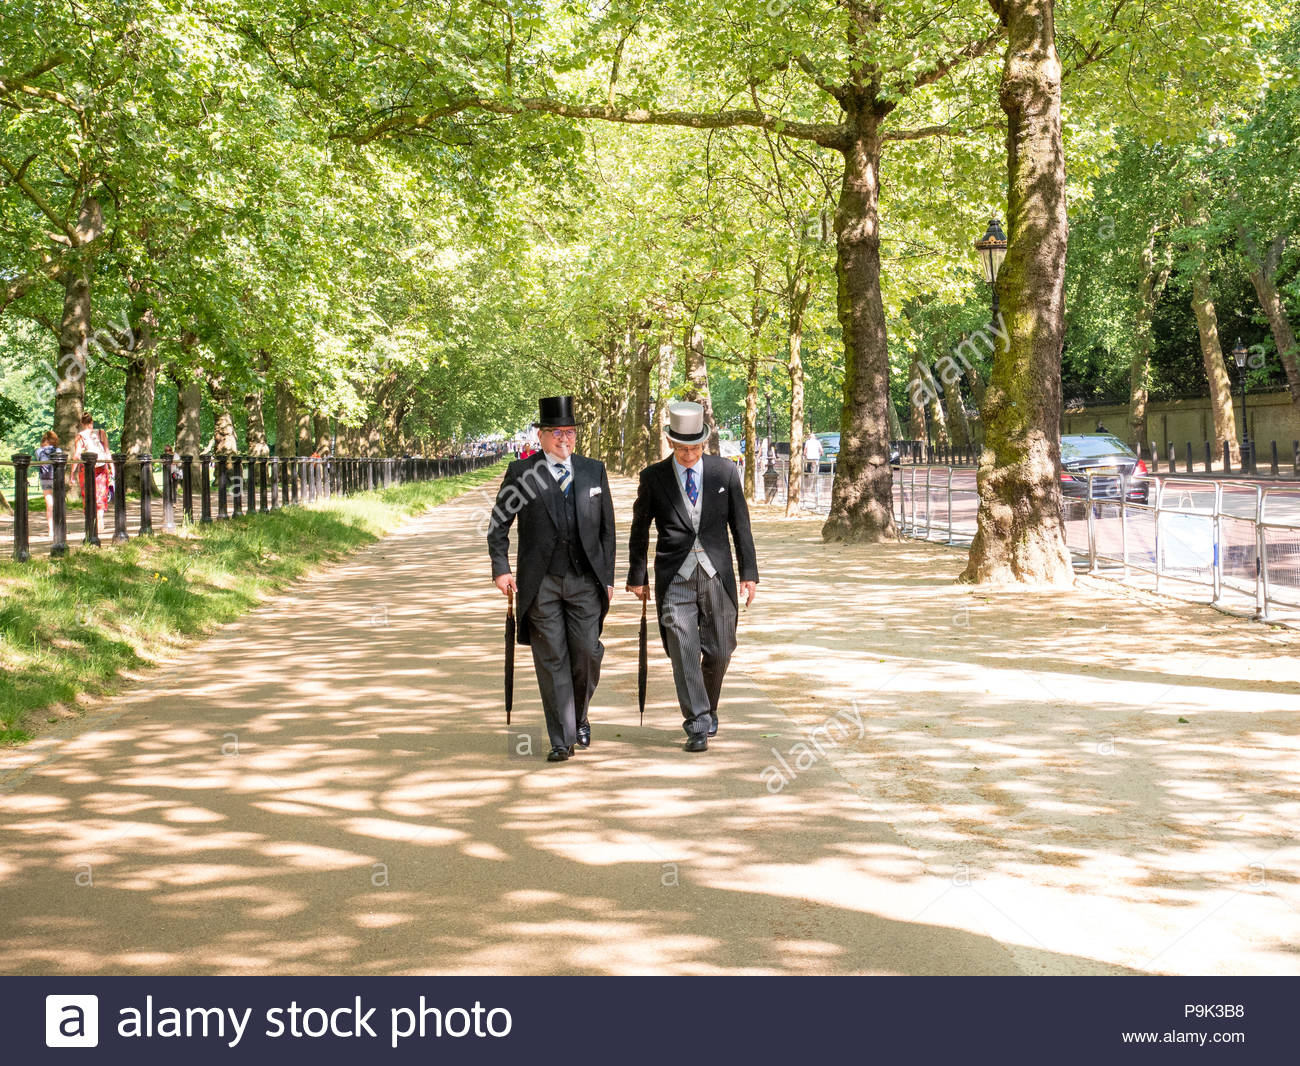 Men in morning suit and top hats strolling down Constitution Hill alongside Green Park, London, UK - Stock Image